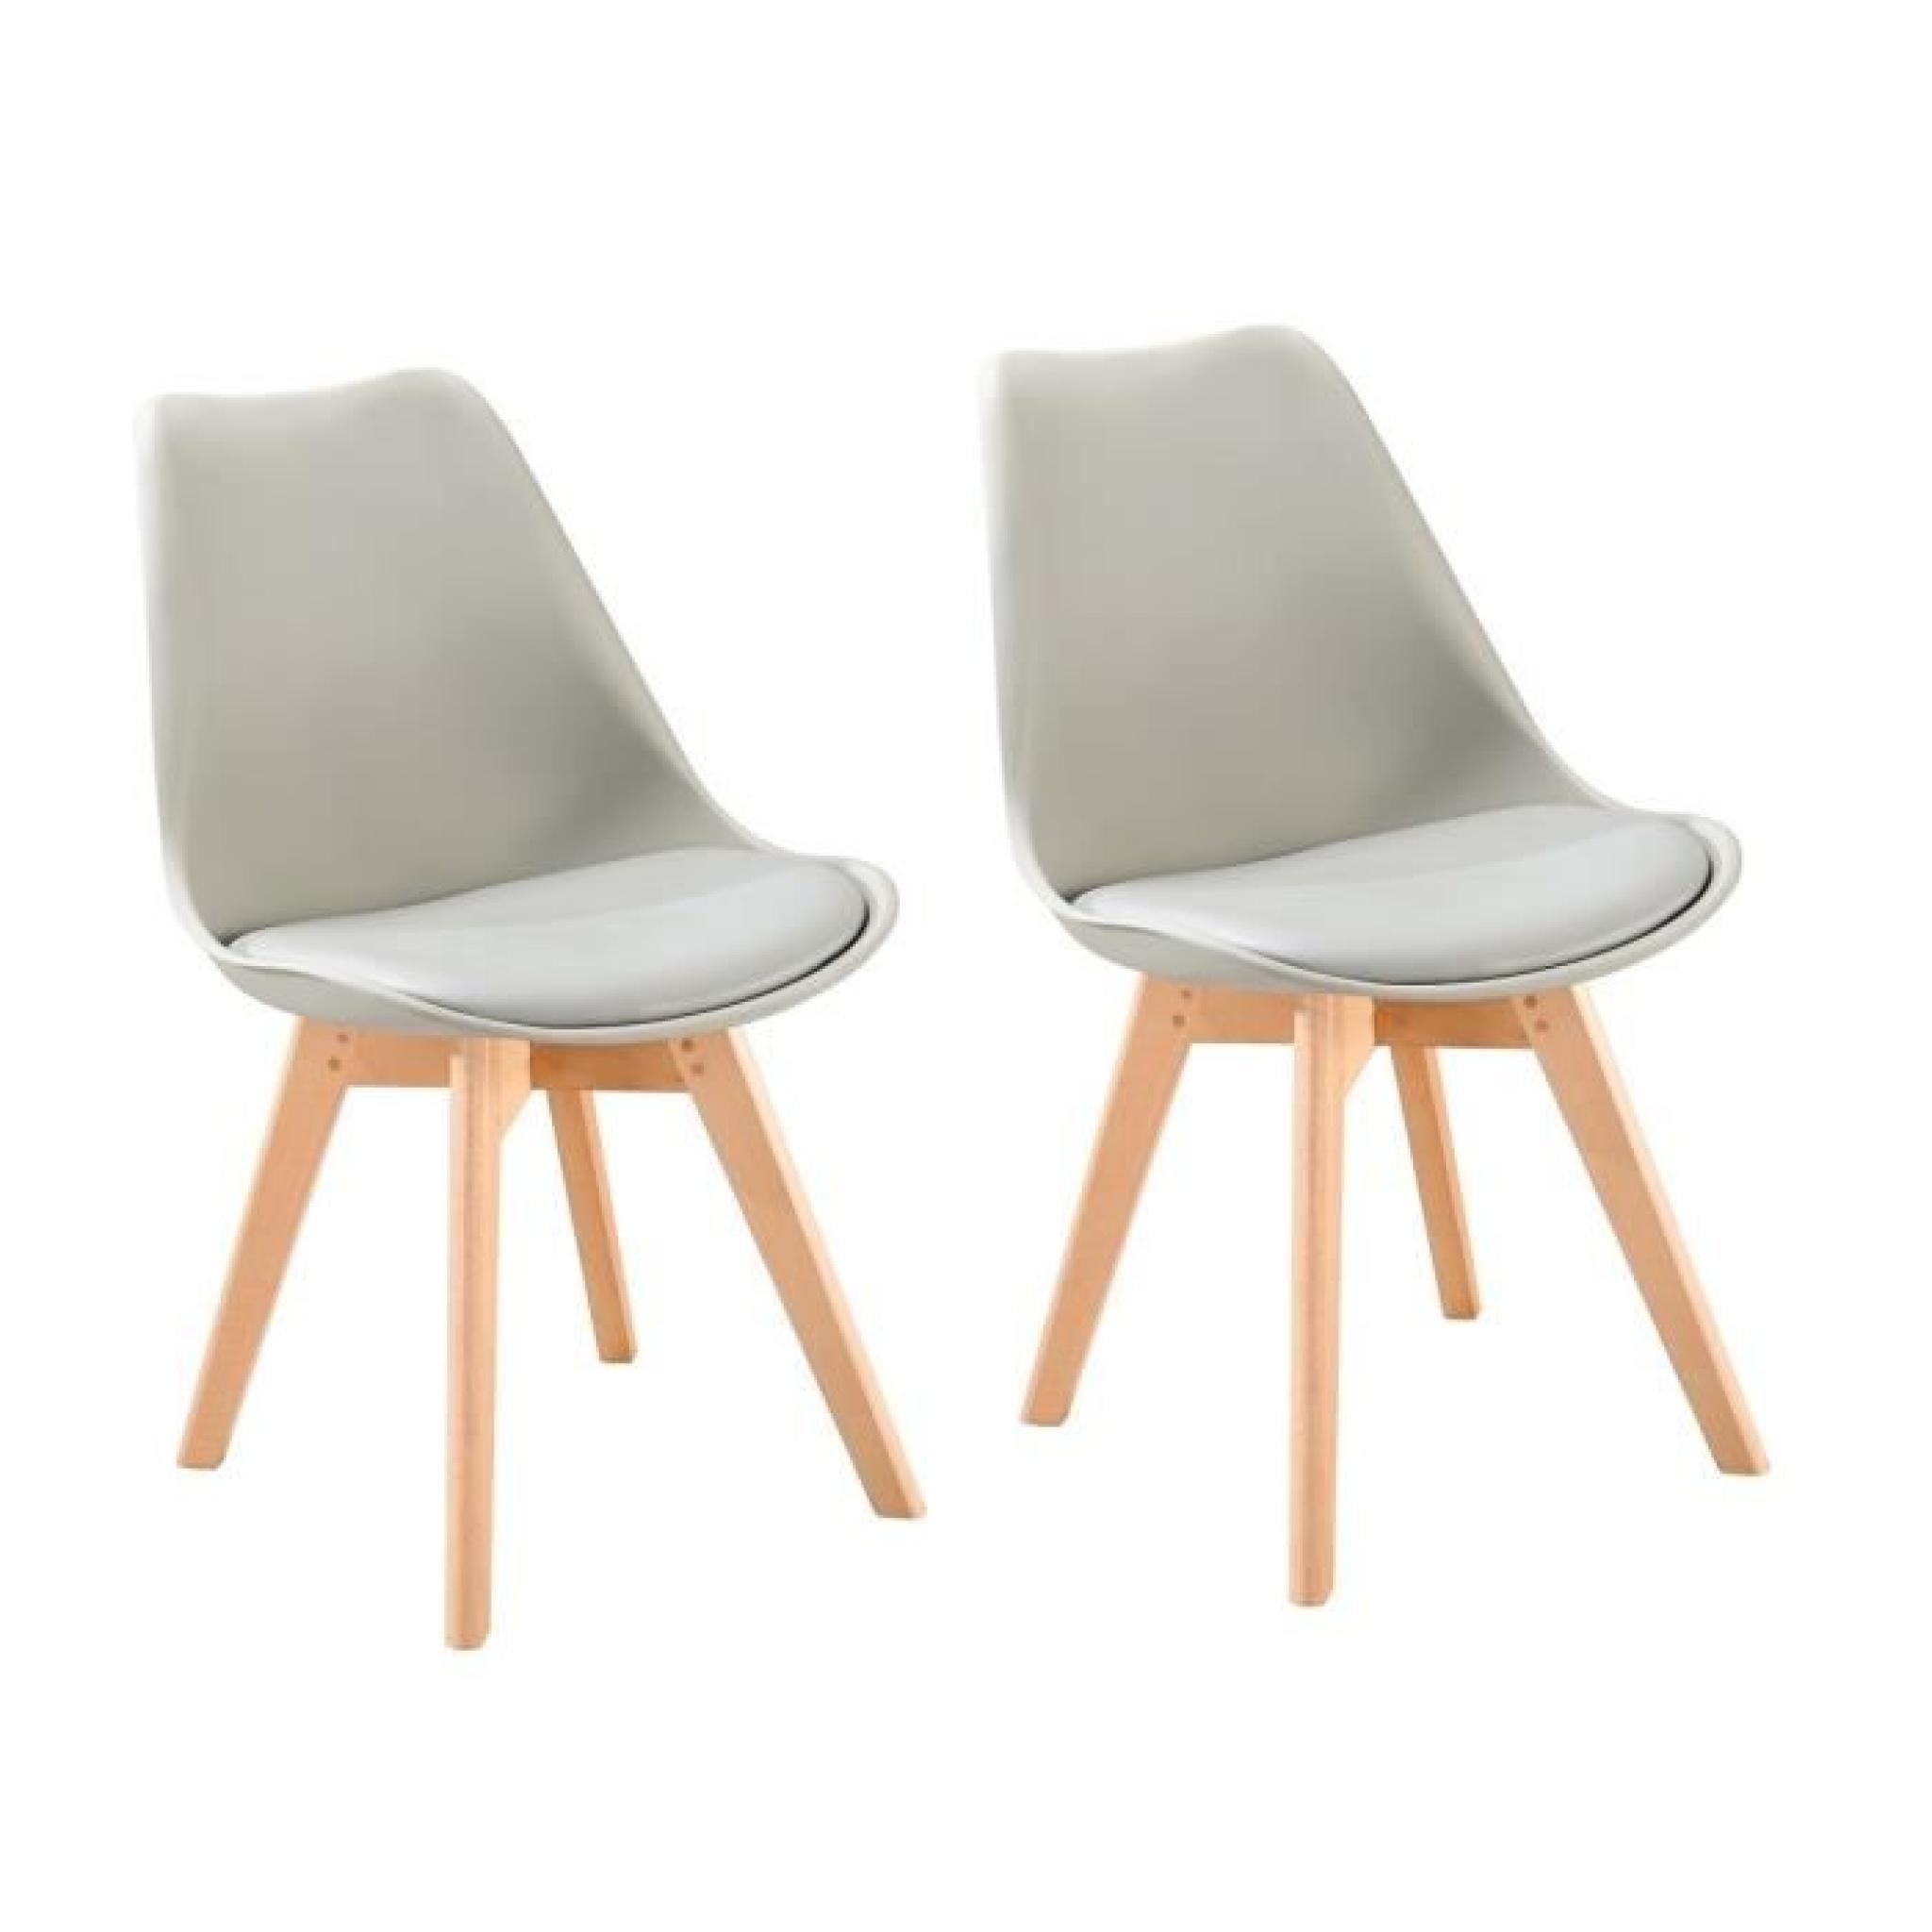 Bjorn lot de 2 chaises scandinaves de salle manger for Chaise scandinave pas cher